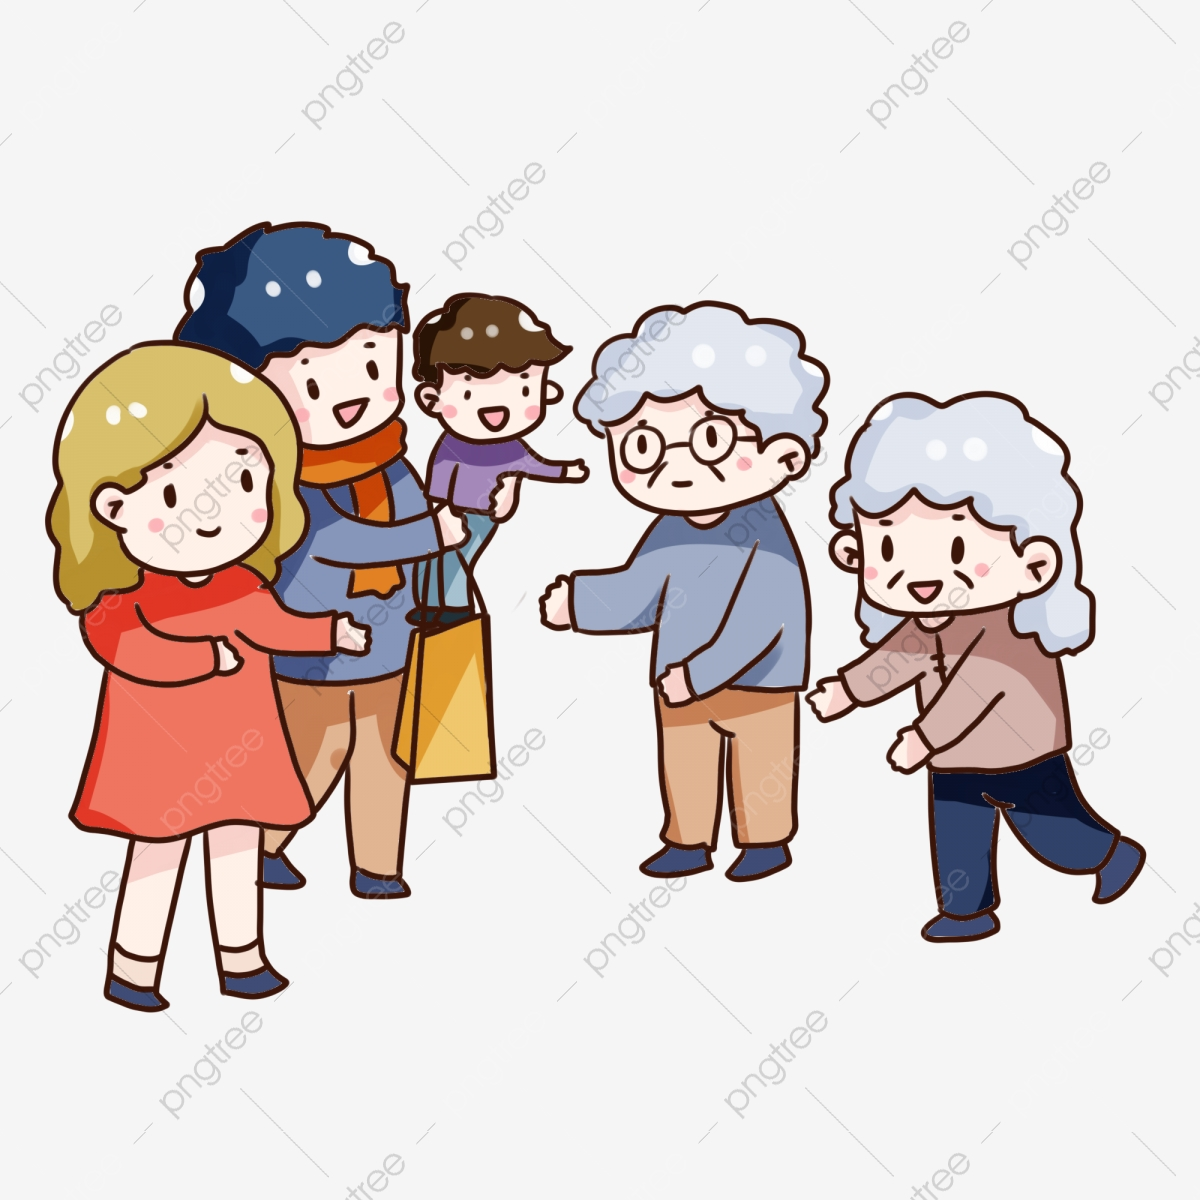 Hand drawn cartoon double. Respect clipart home visit